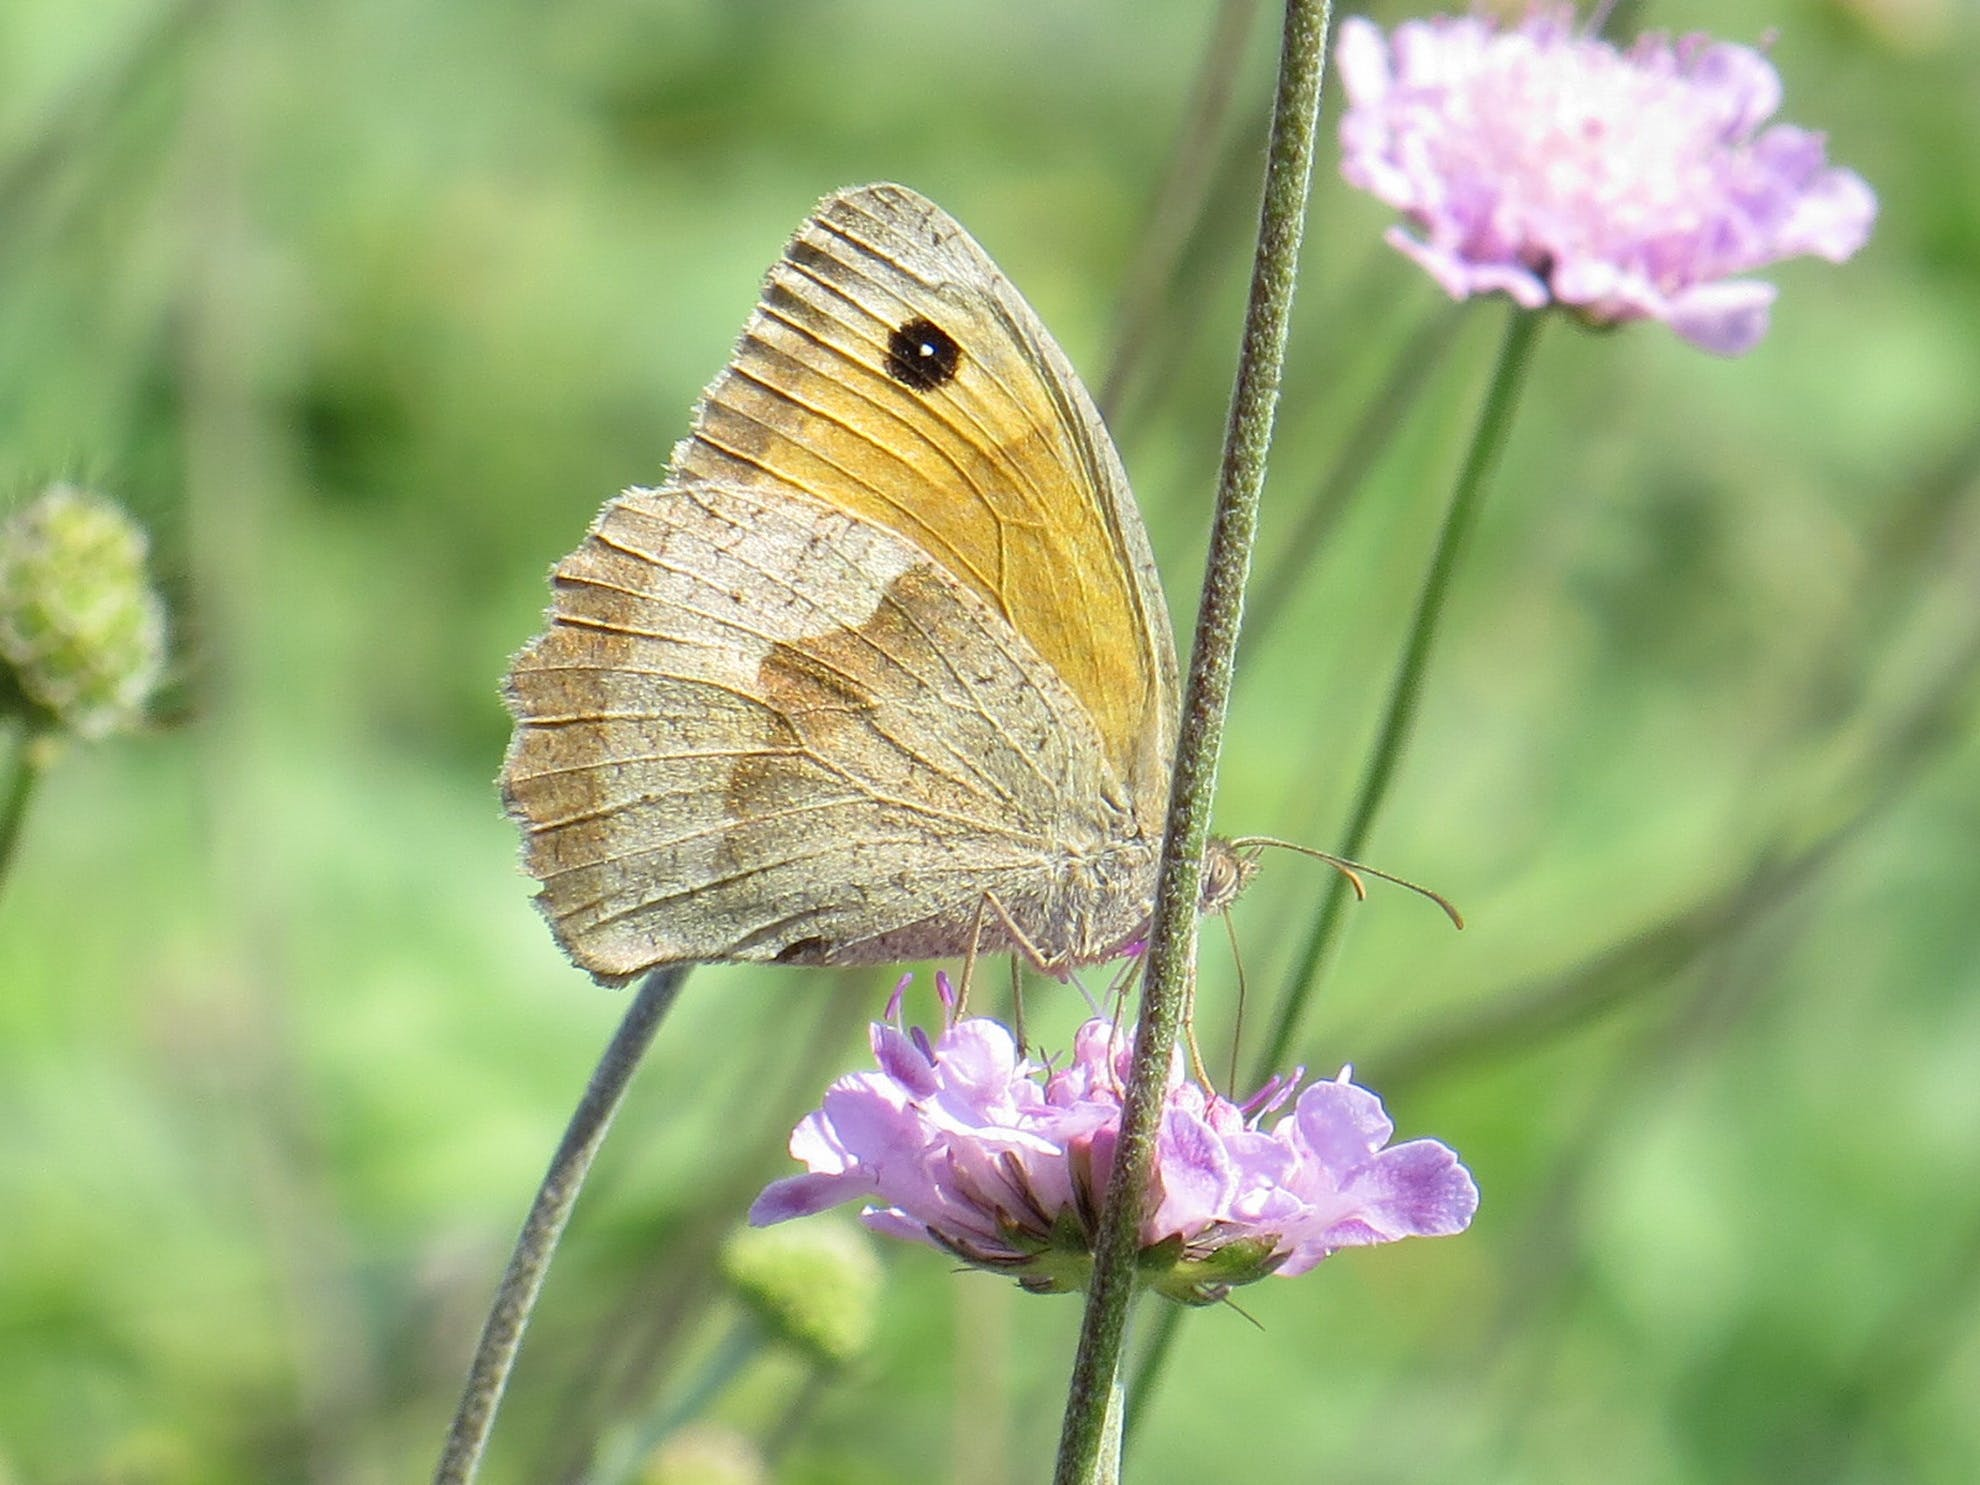 Free stock photo of butterflies, butterfly on a flower, nature